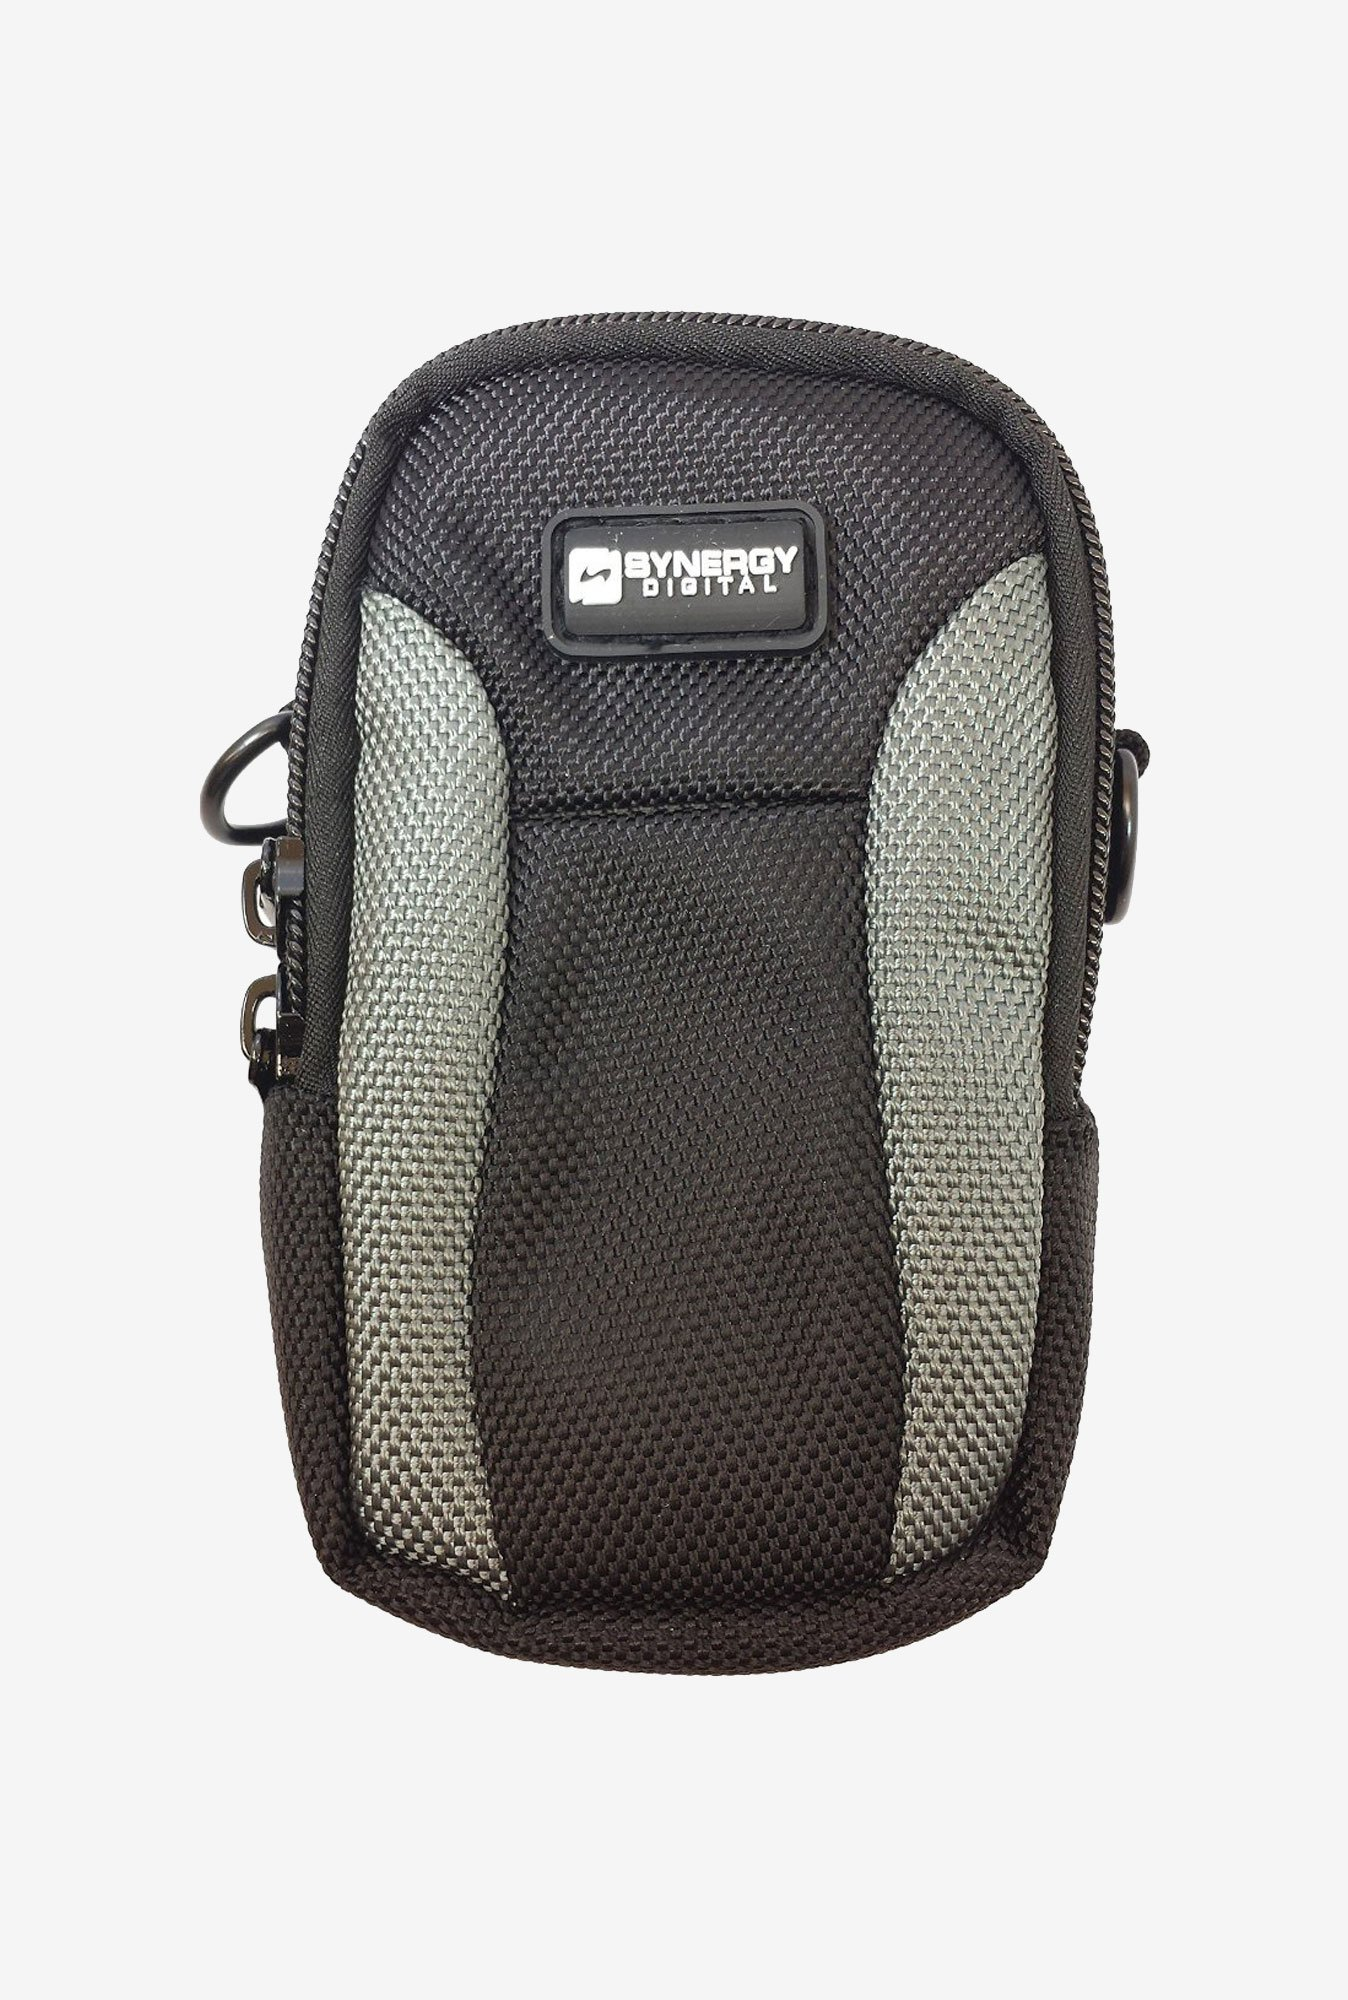 Synergy Digital Lumix Dmc-Zs40 Camera case (Black/Grey)